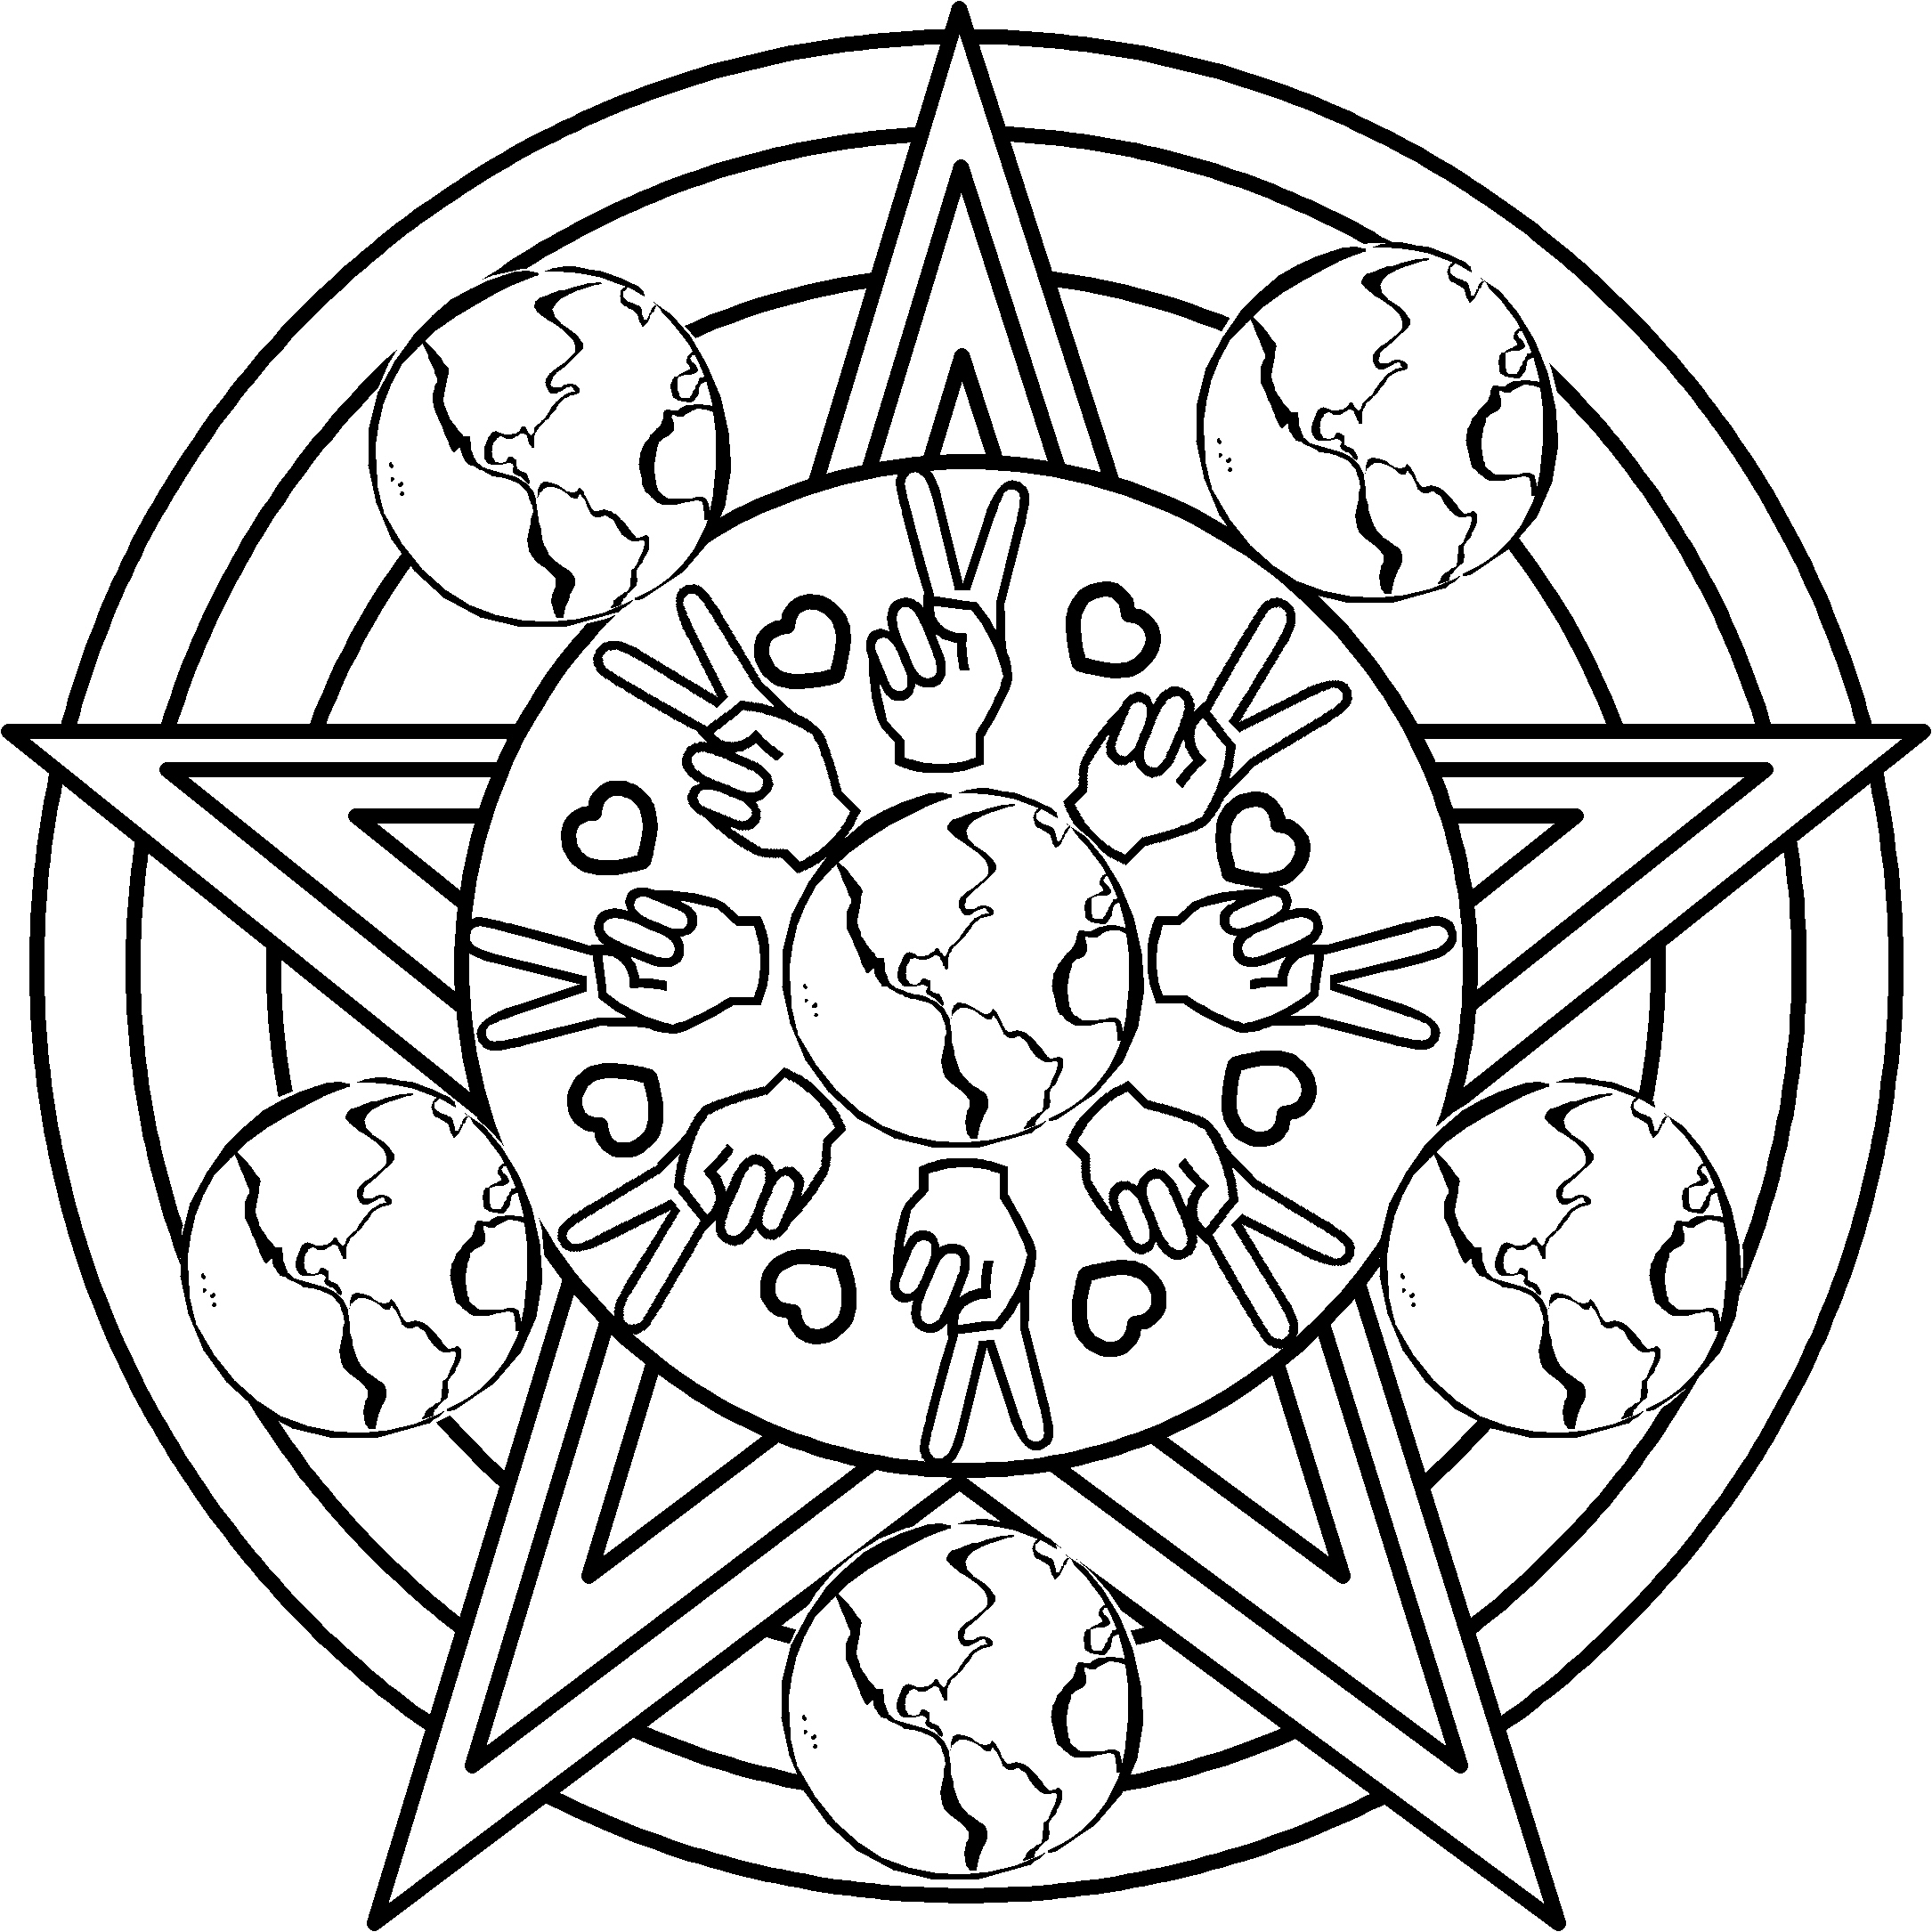 2170x2170 Peace Sign Coloring Pages Coloringsuite To Print